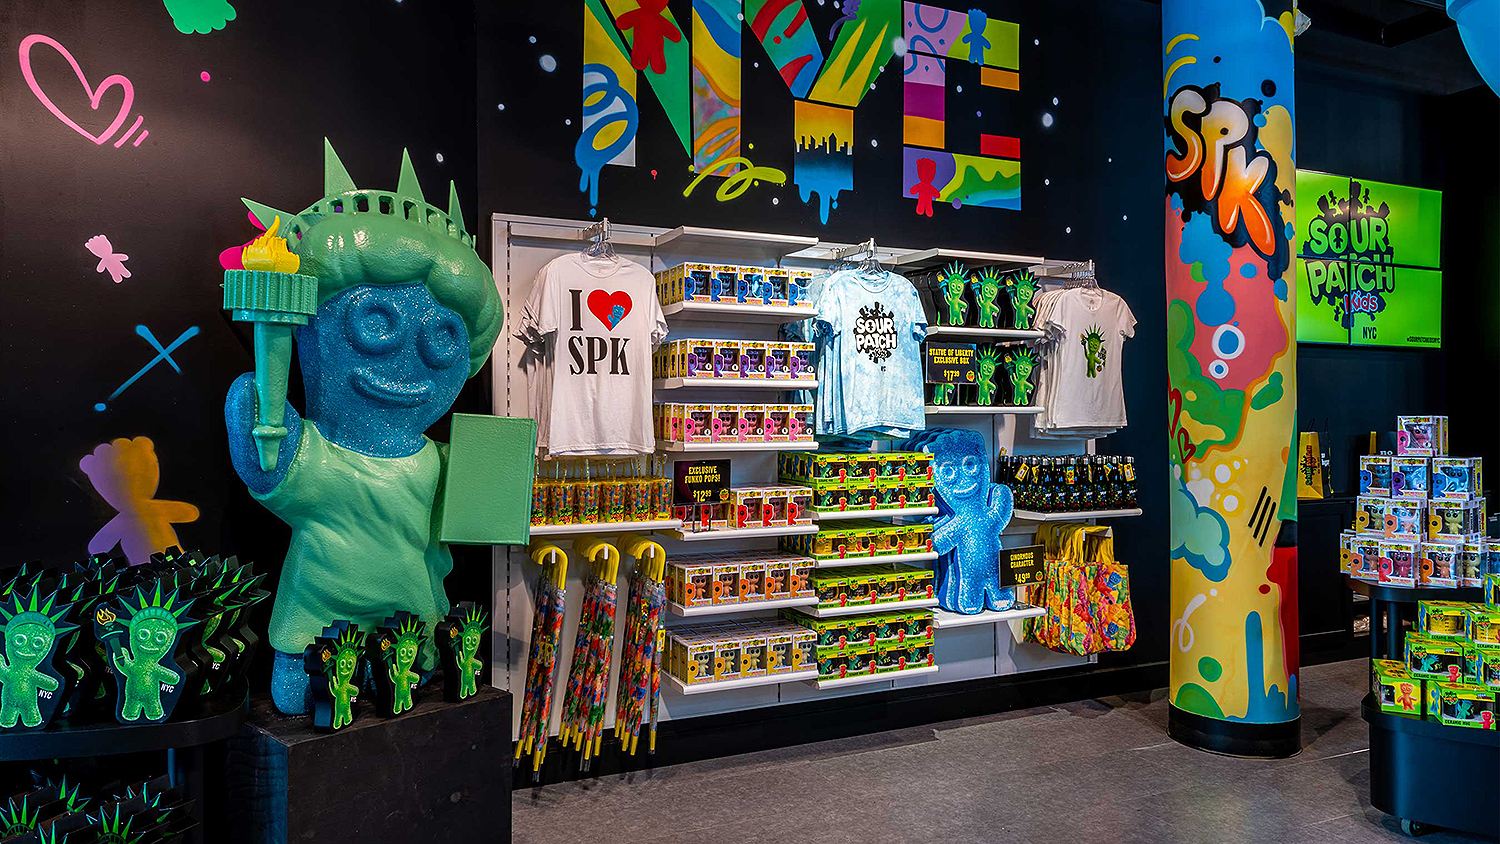 merchandise at the Sour Patch Kids store